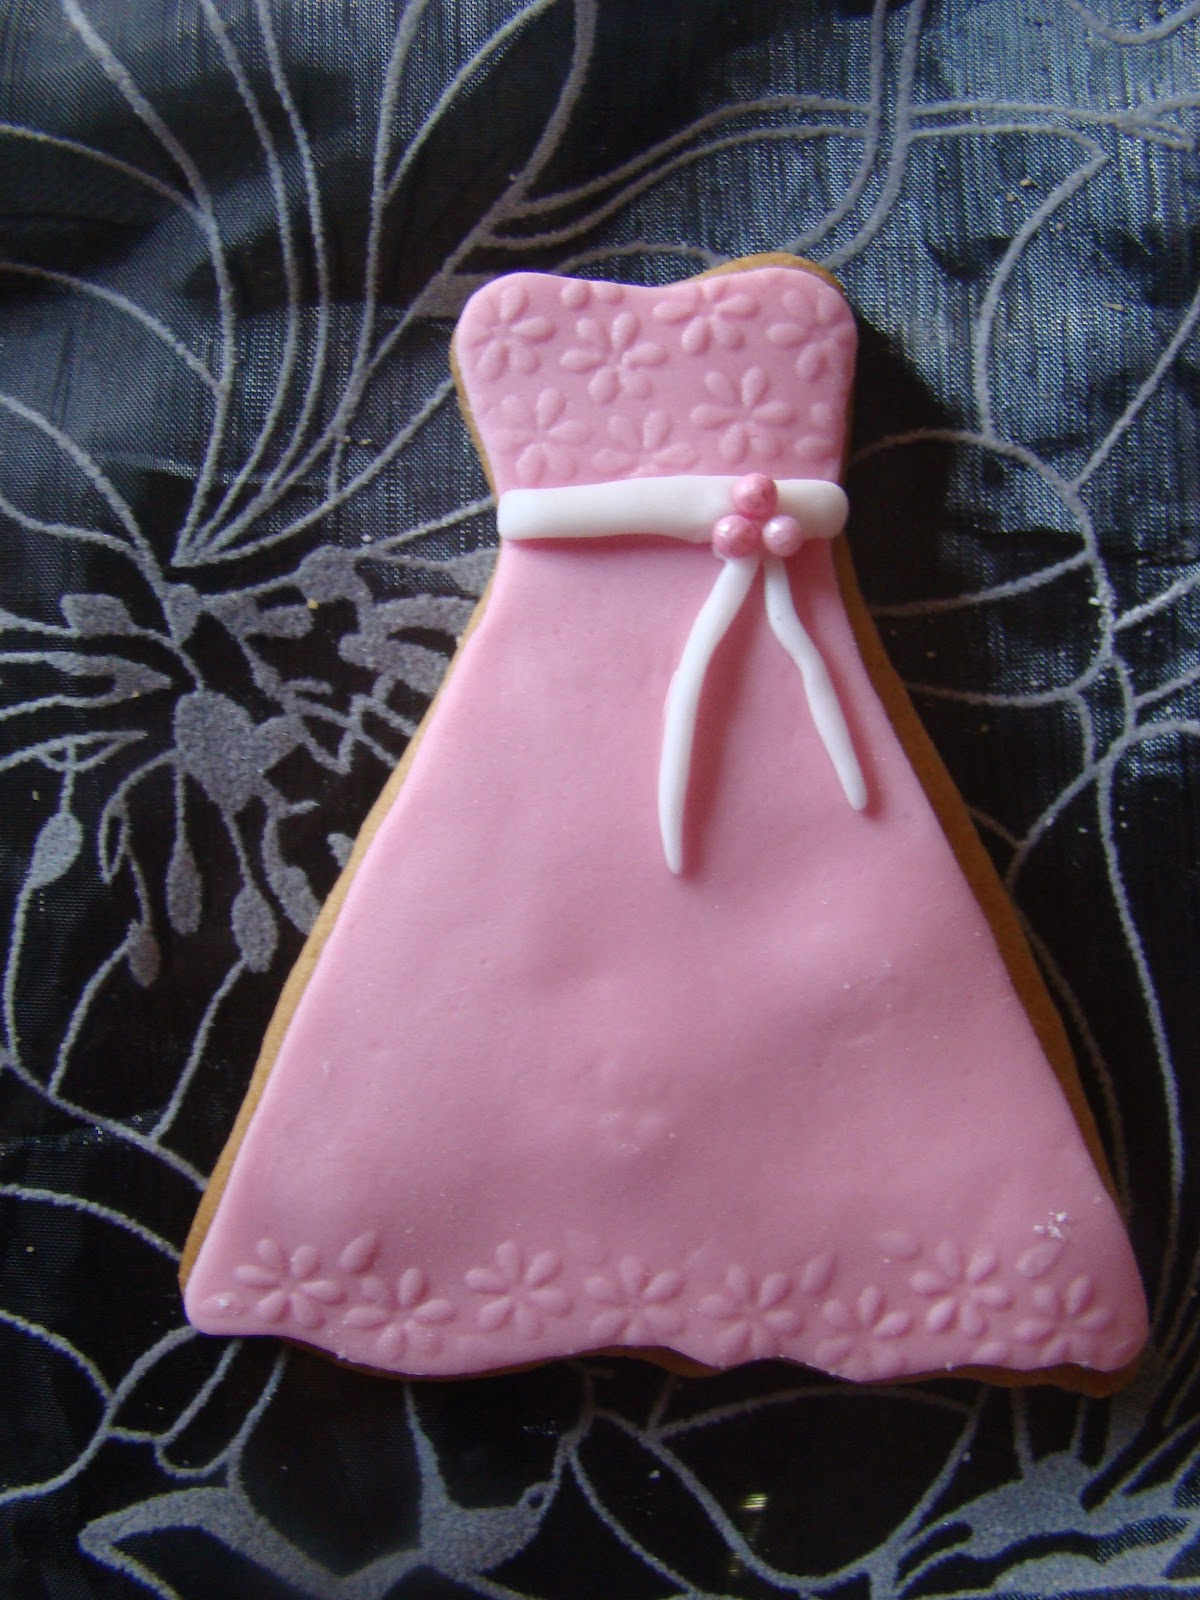 ELS NOSTRES MOMENTS: Mis primeras galletas decoradas y como regalar ...